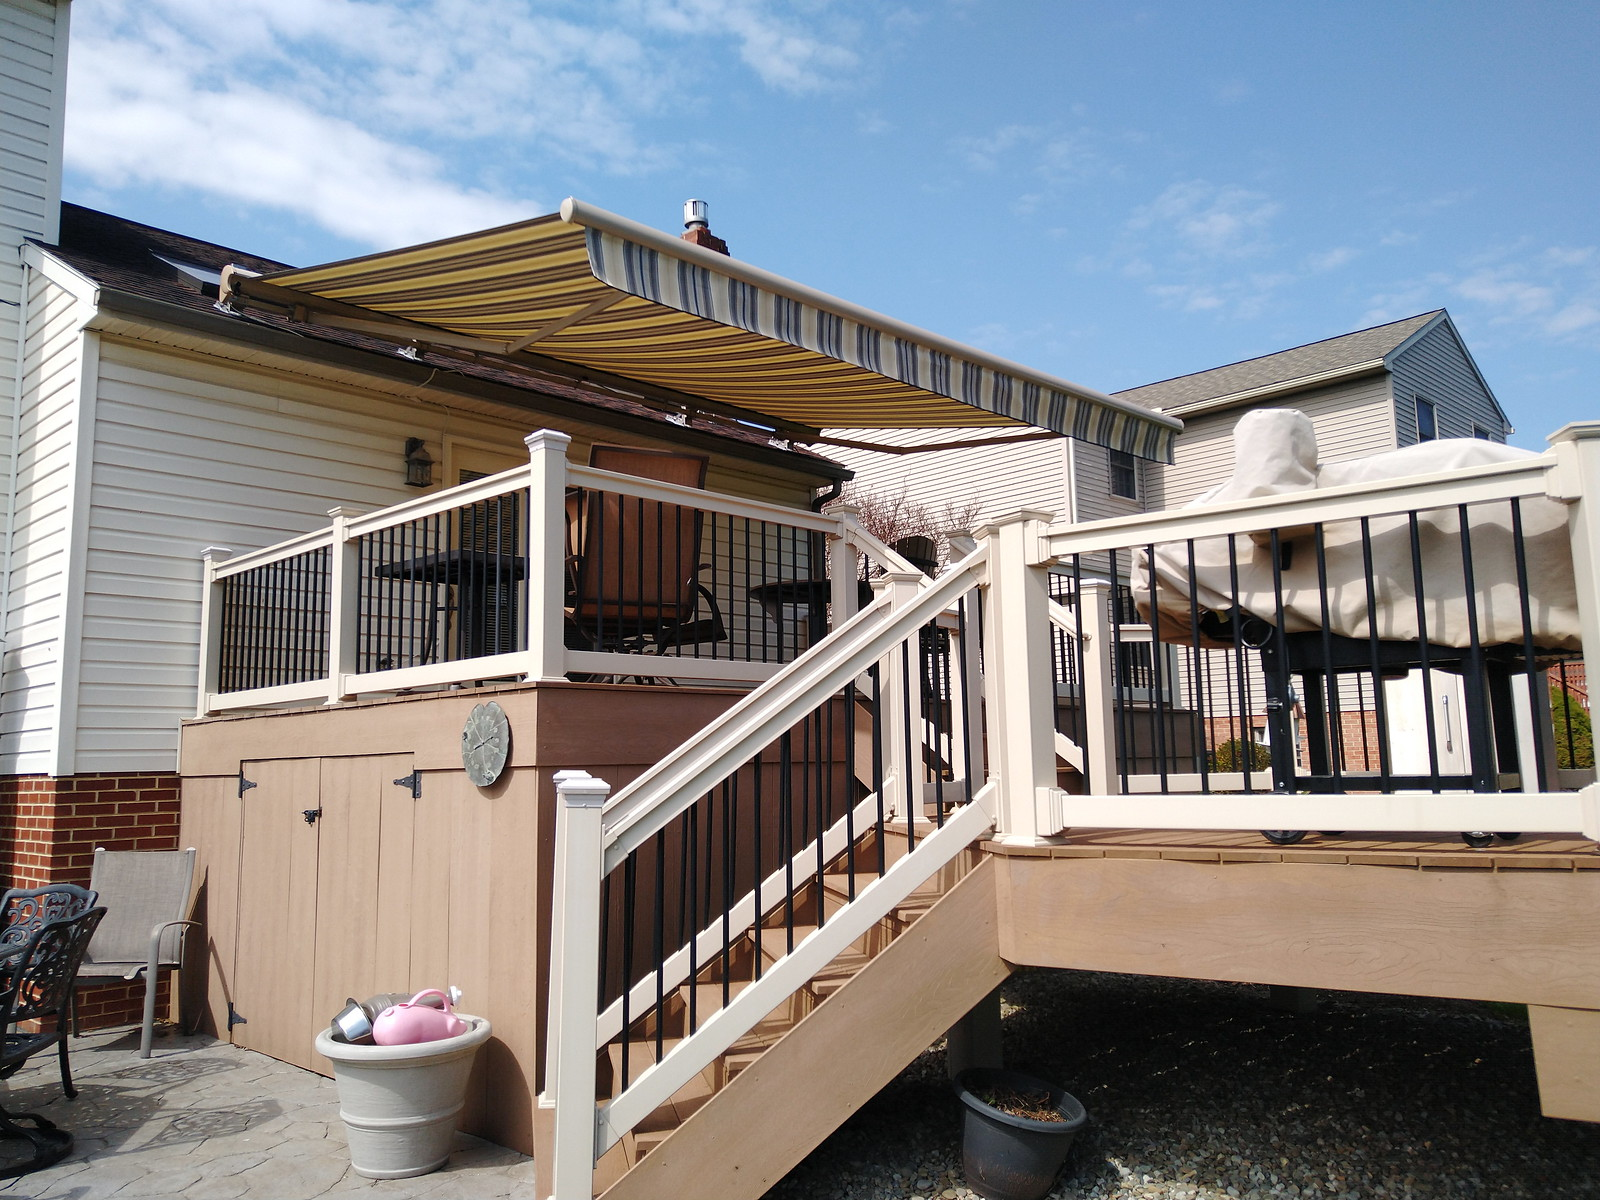 Retractable-Awning Straight Valance